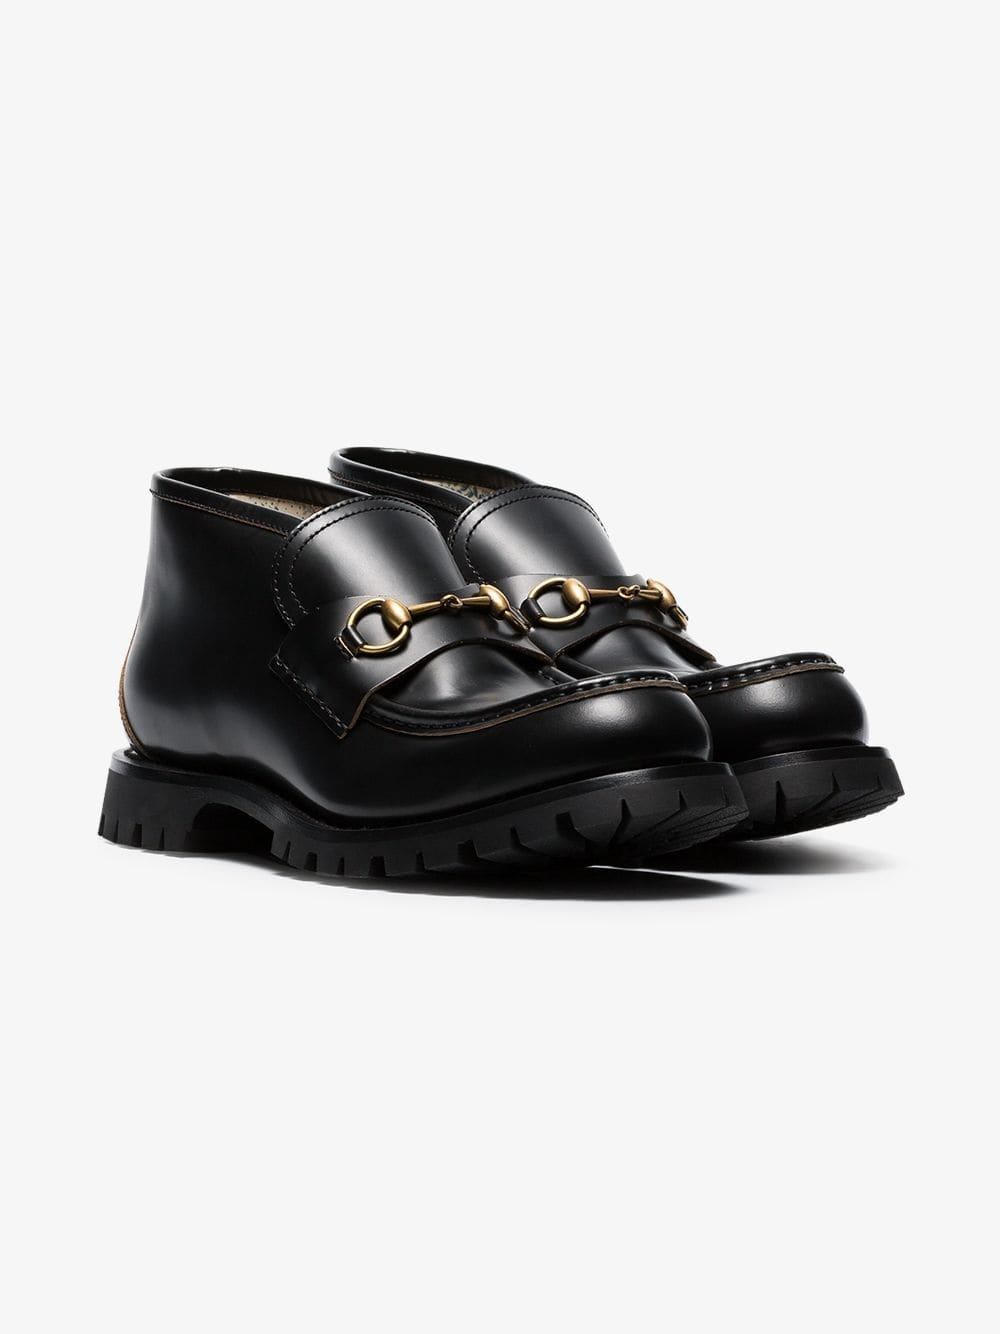 b52ddb405 Lyst - Gucci Django Leather Ankle Boot in Black for Men - Save 17%